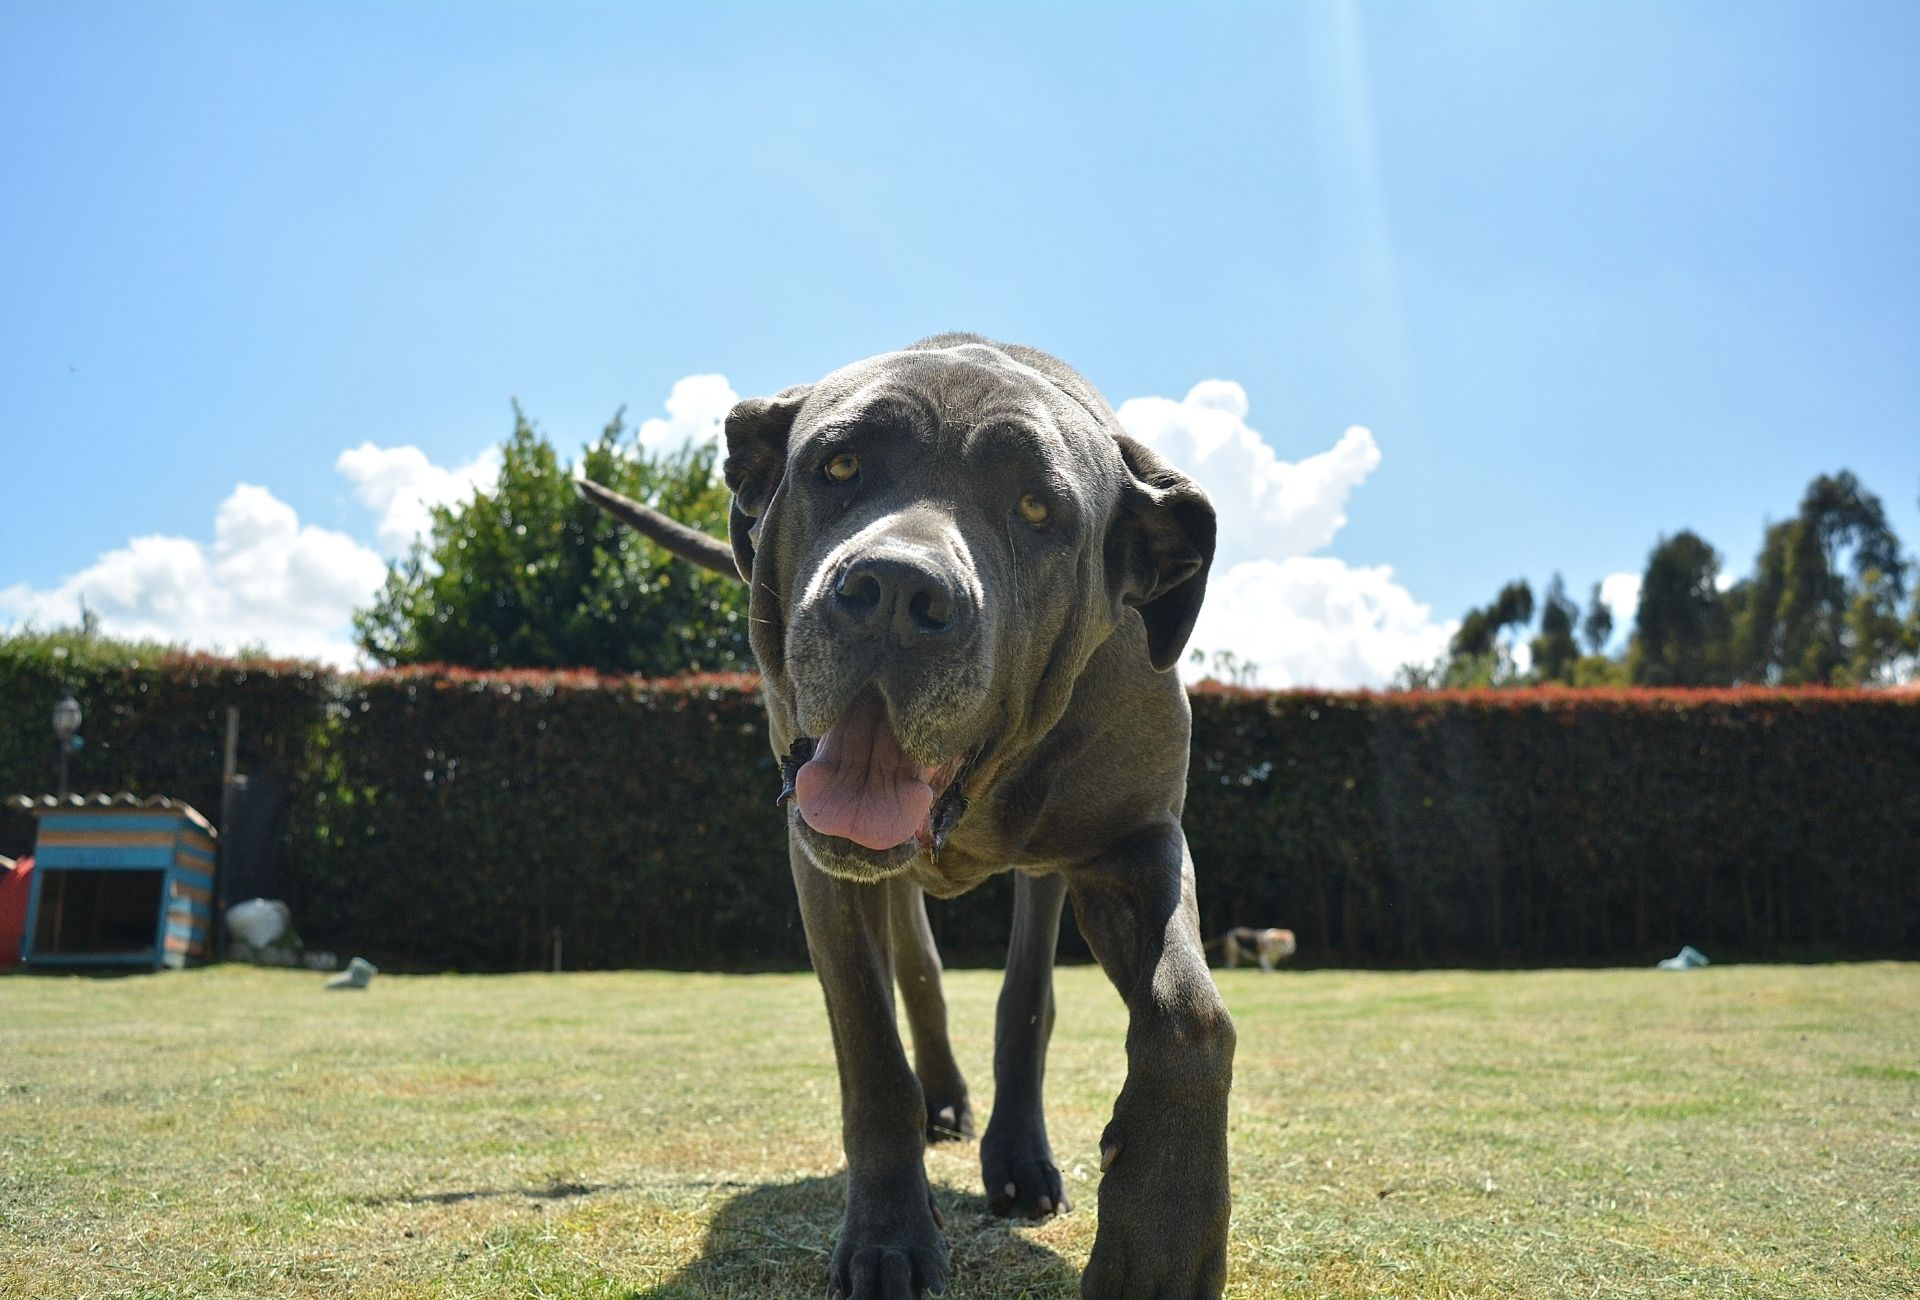 Large Neapolitan Mastiff with droopy eyes and big jowls walking towards the camera.